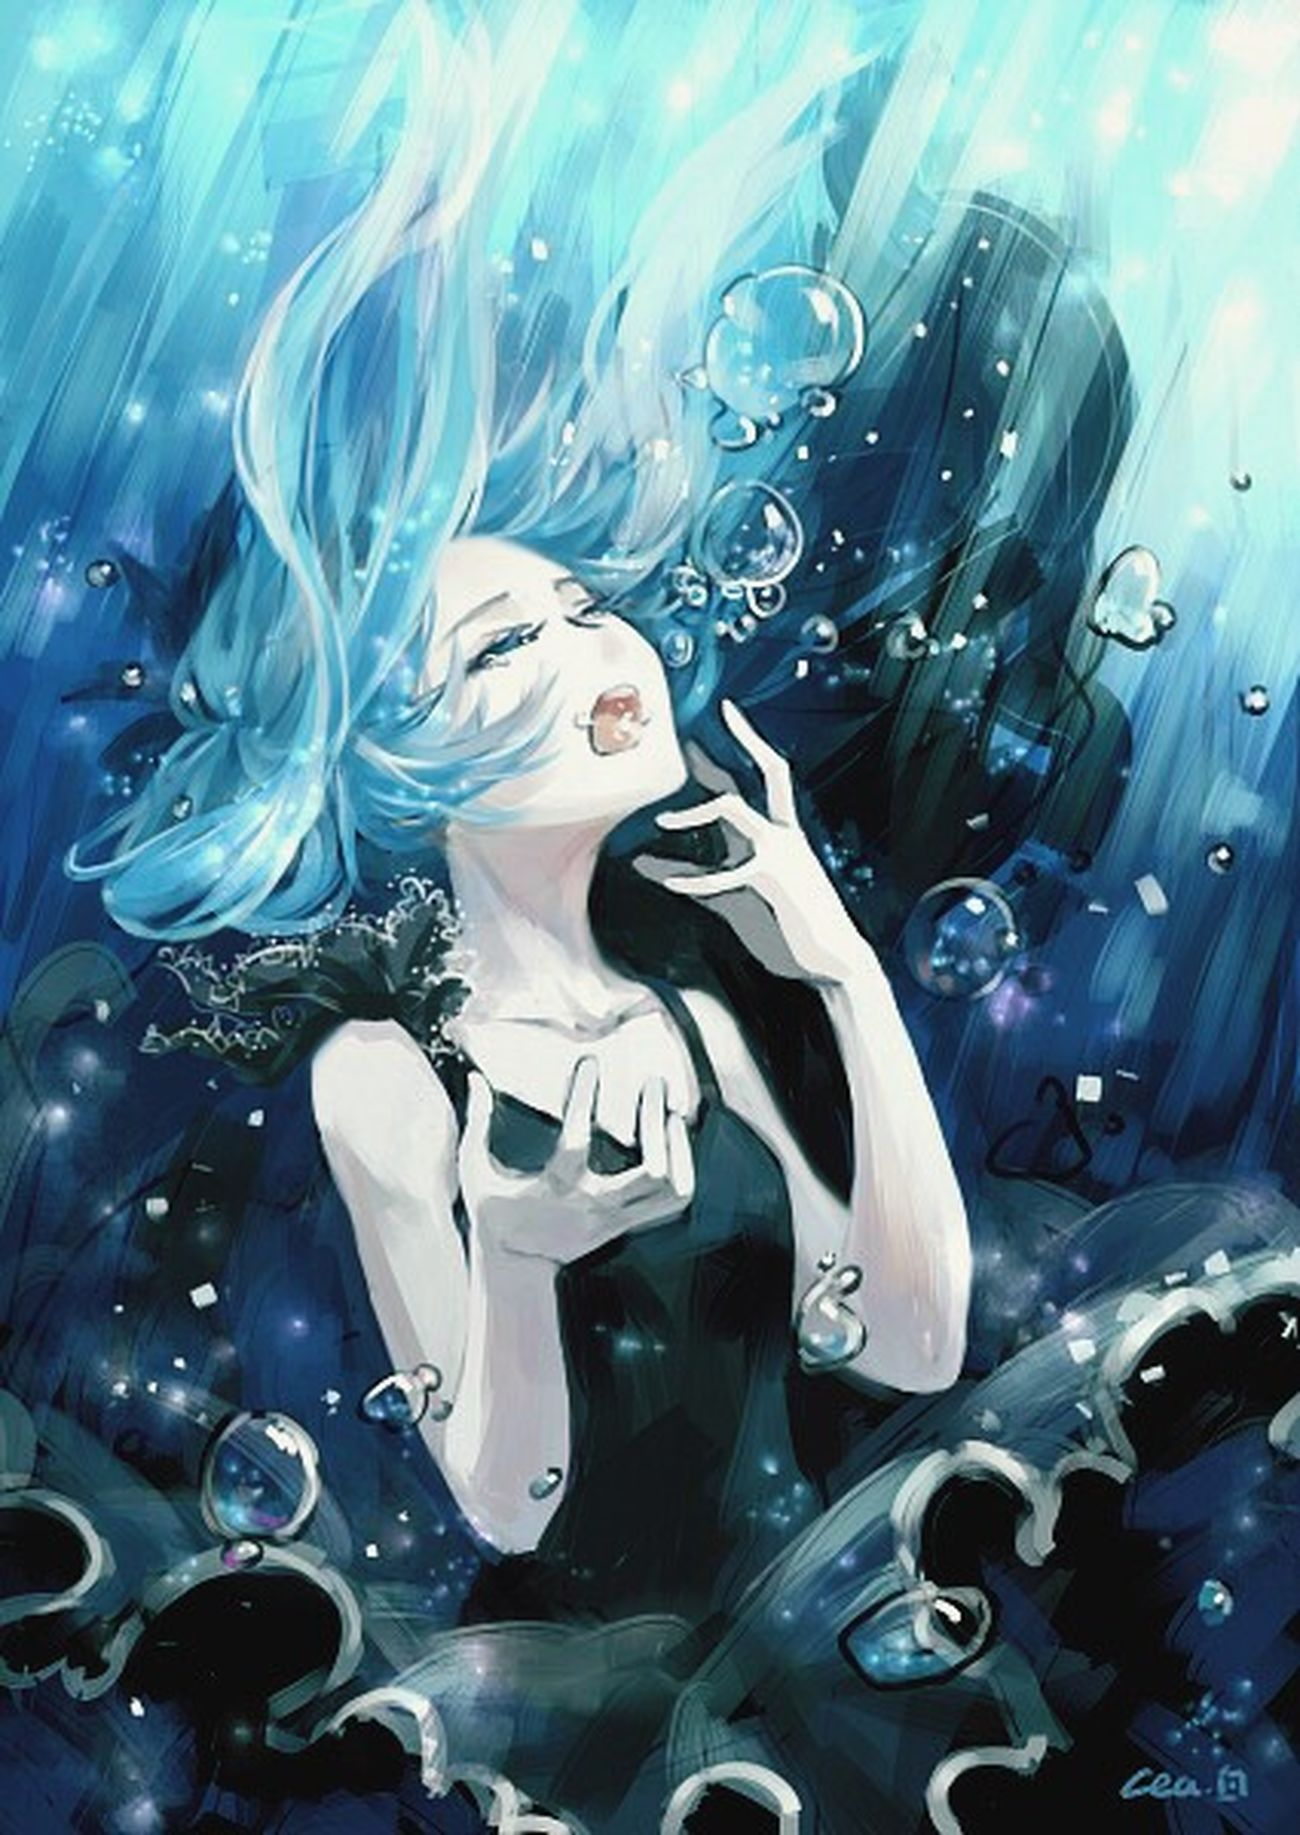 Vocaloid Mikuhatsune Art Anime Sea Deep Sea Girl Meer аниме Море море👻🌊